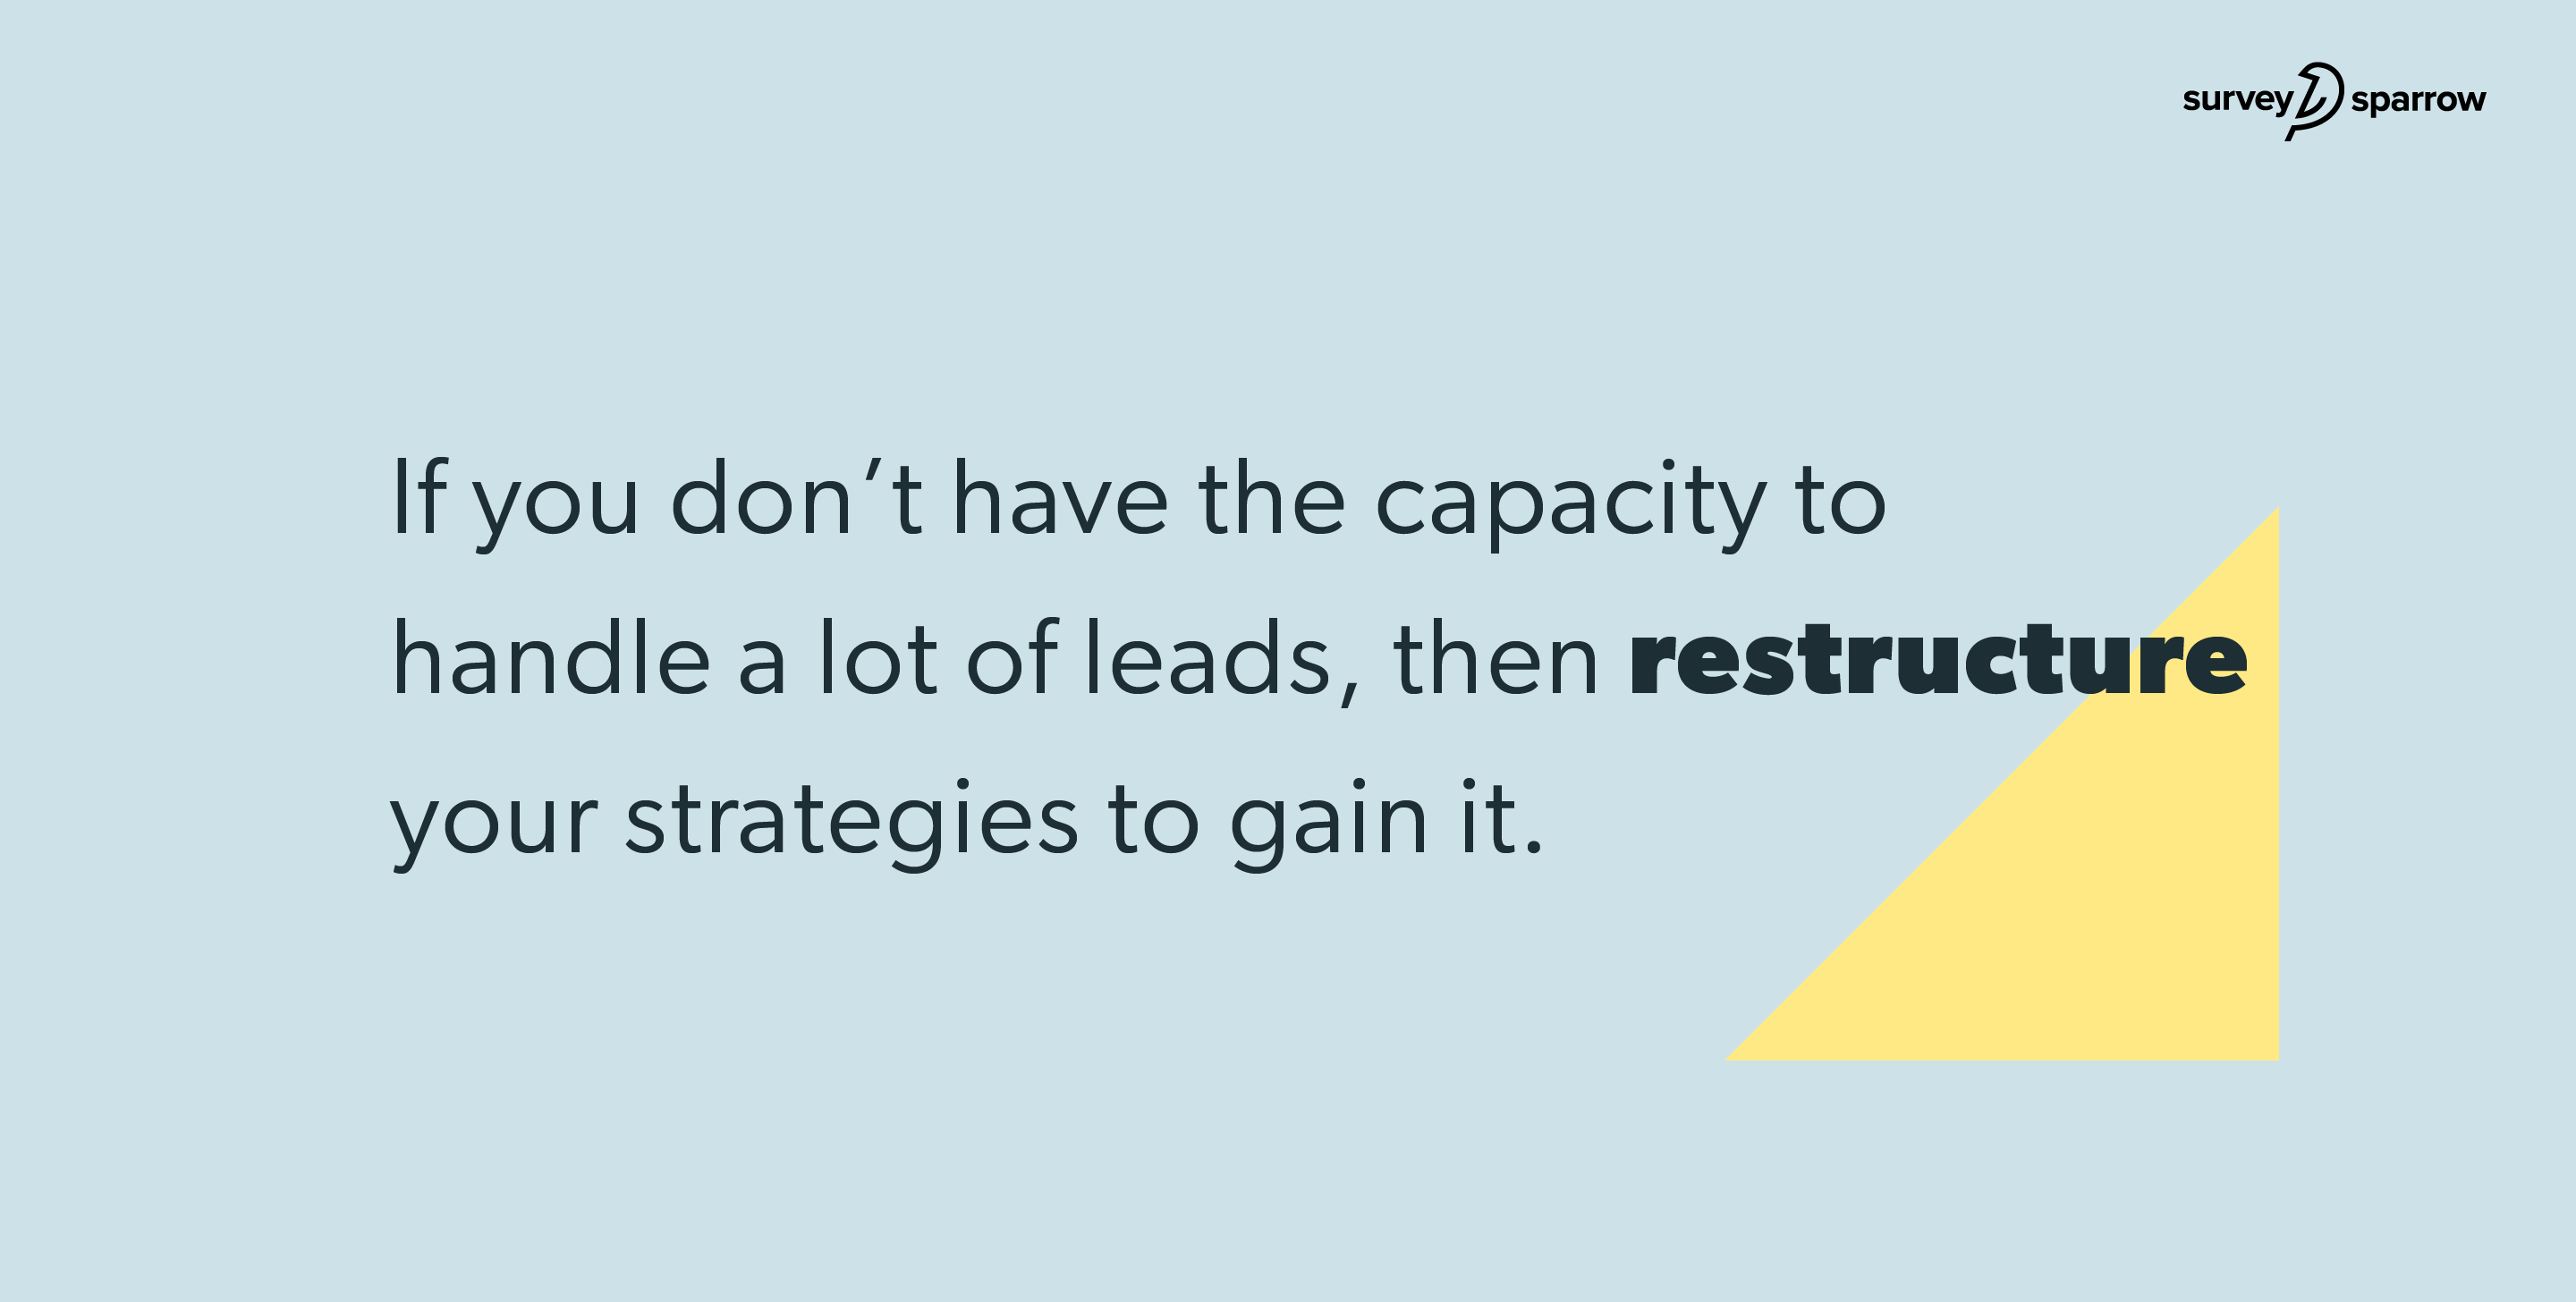 f you don't have the capacity to handle a lot of leads, then restructure your lead generation strategies to gain it.